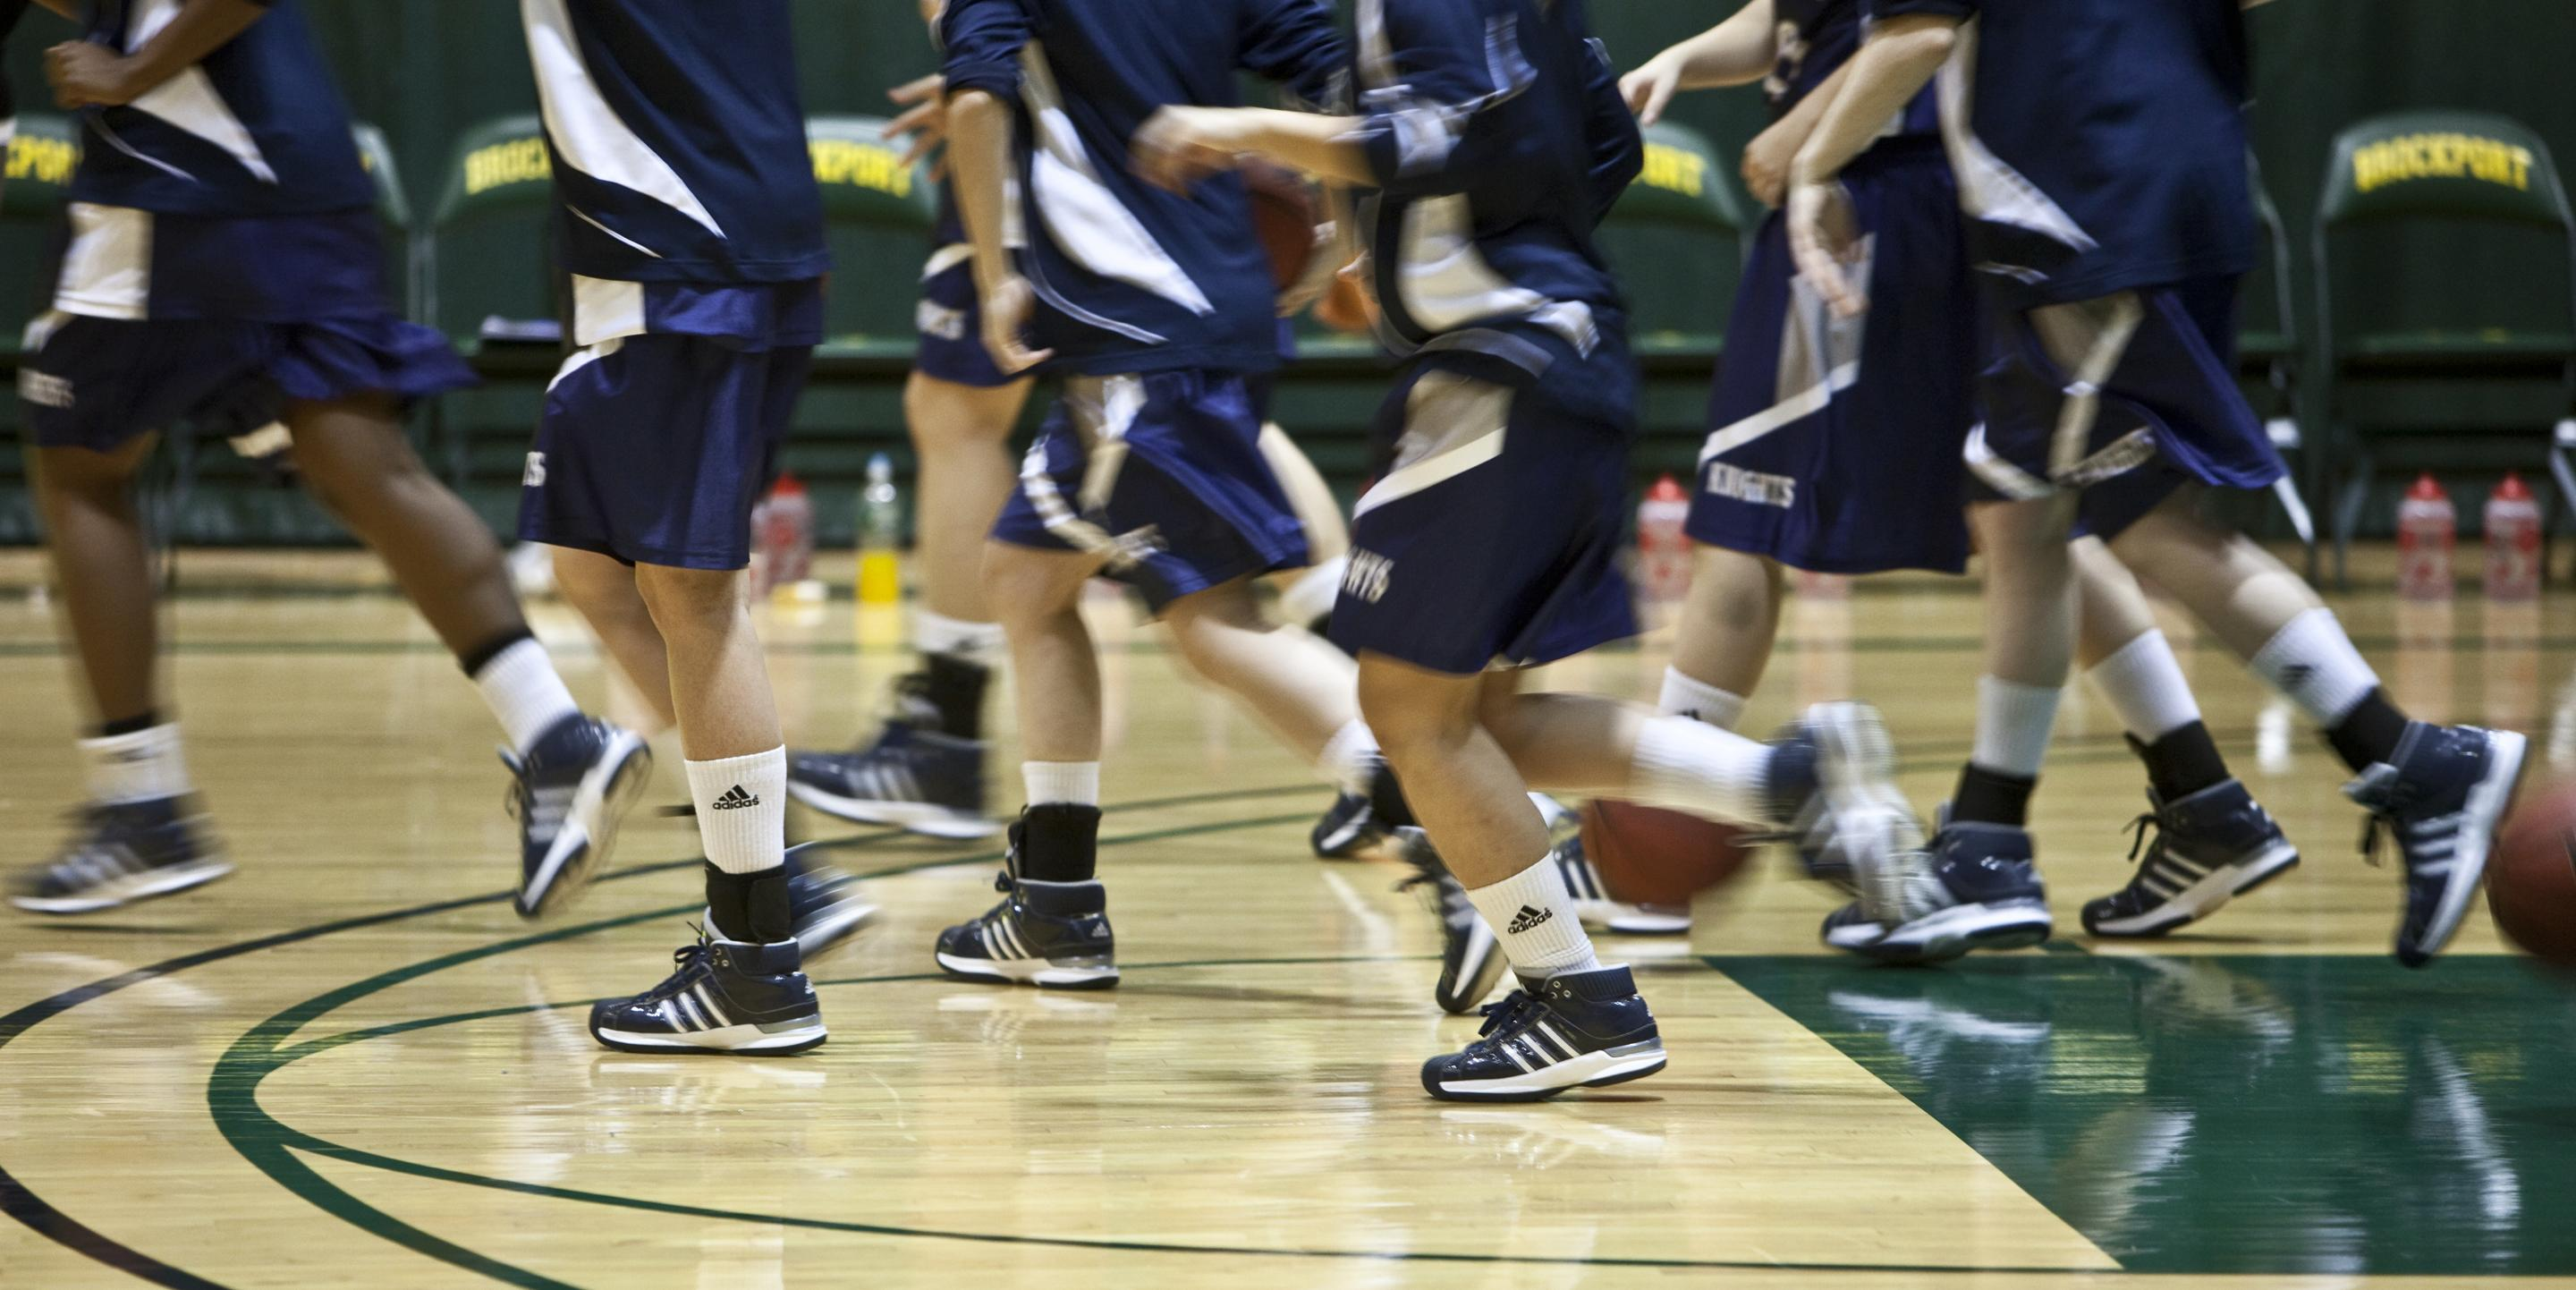 A photo of basketball players running.